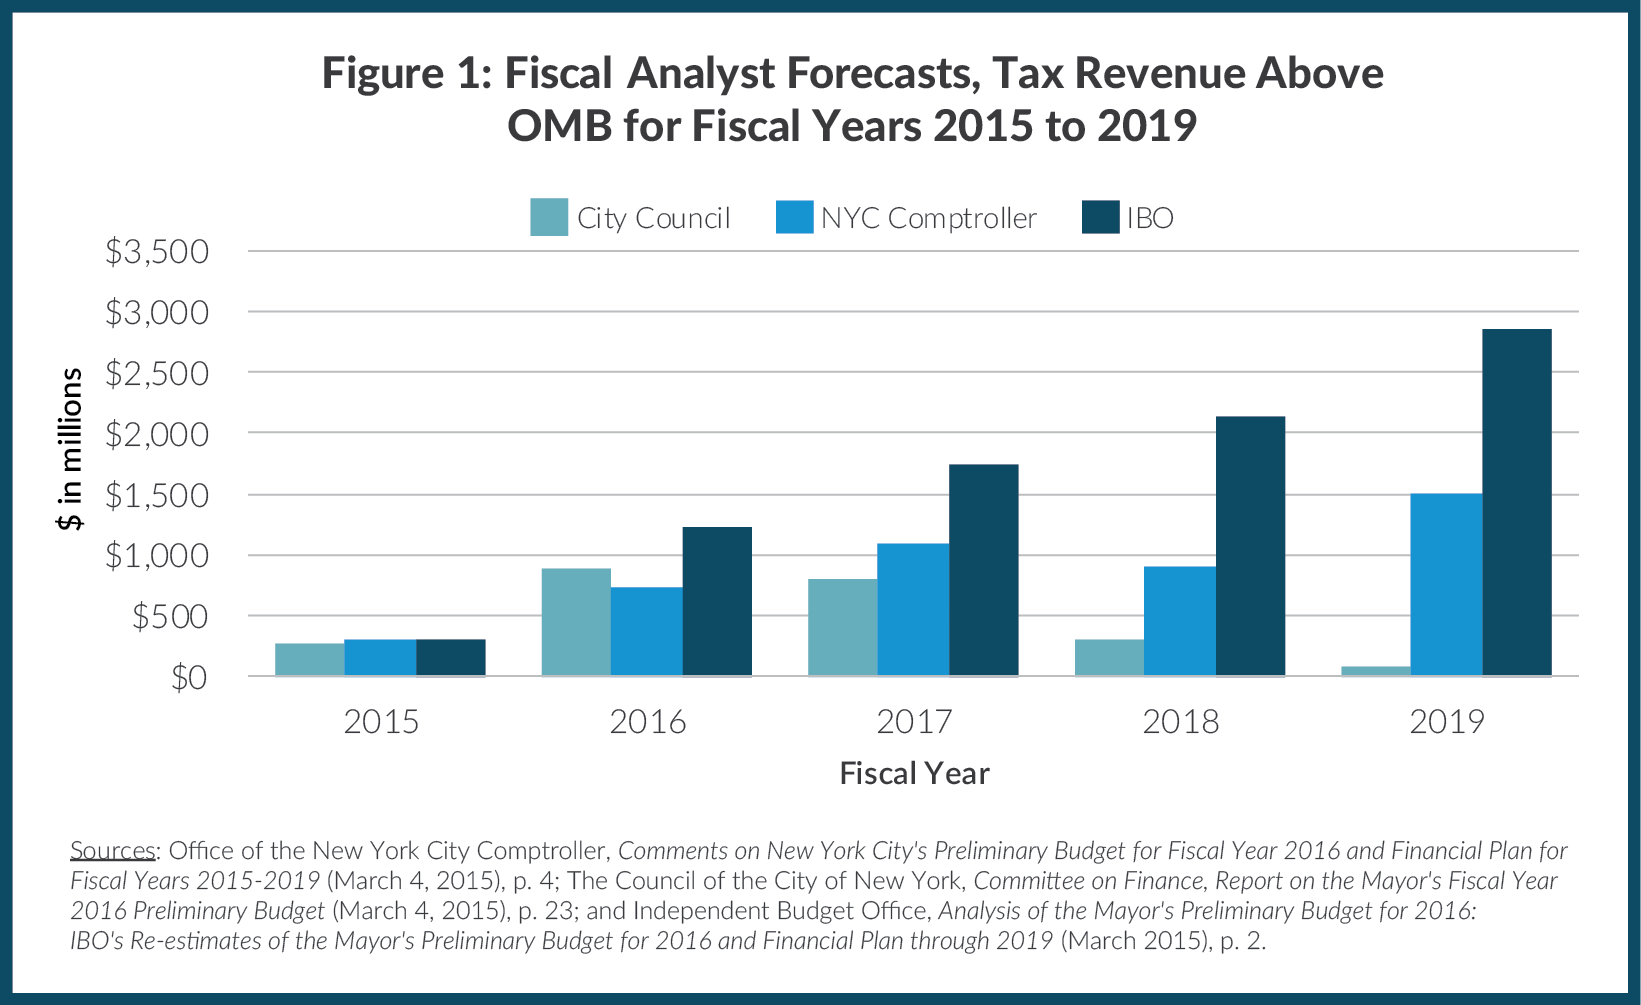 Figure 1: Fiscal Monitor Forecasts,  Tax Revenue Above OMB for Fiscal Years 2015 to 2019